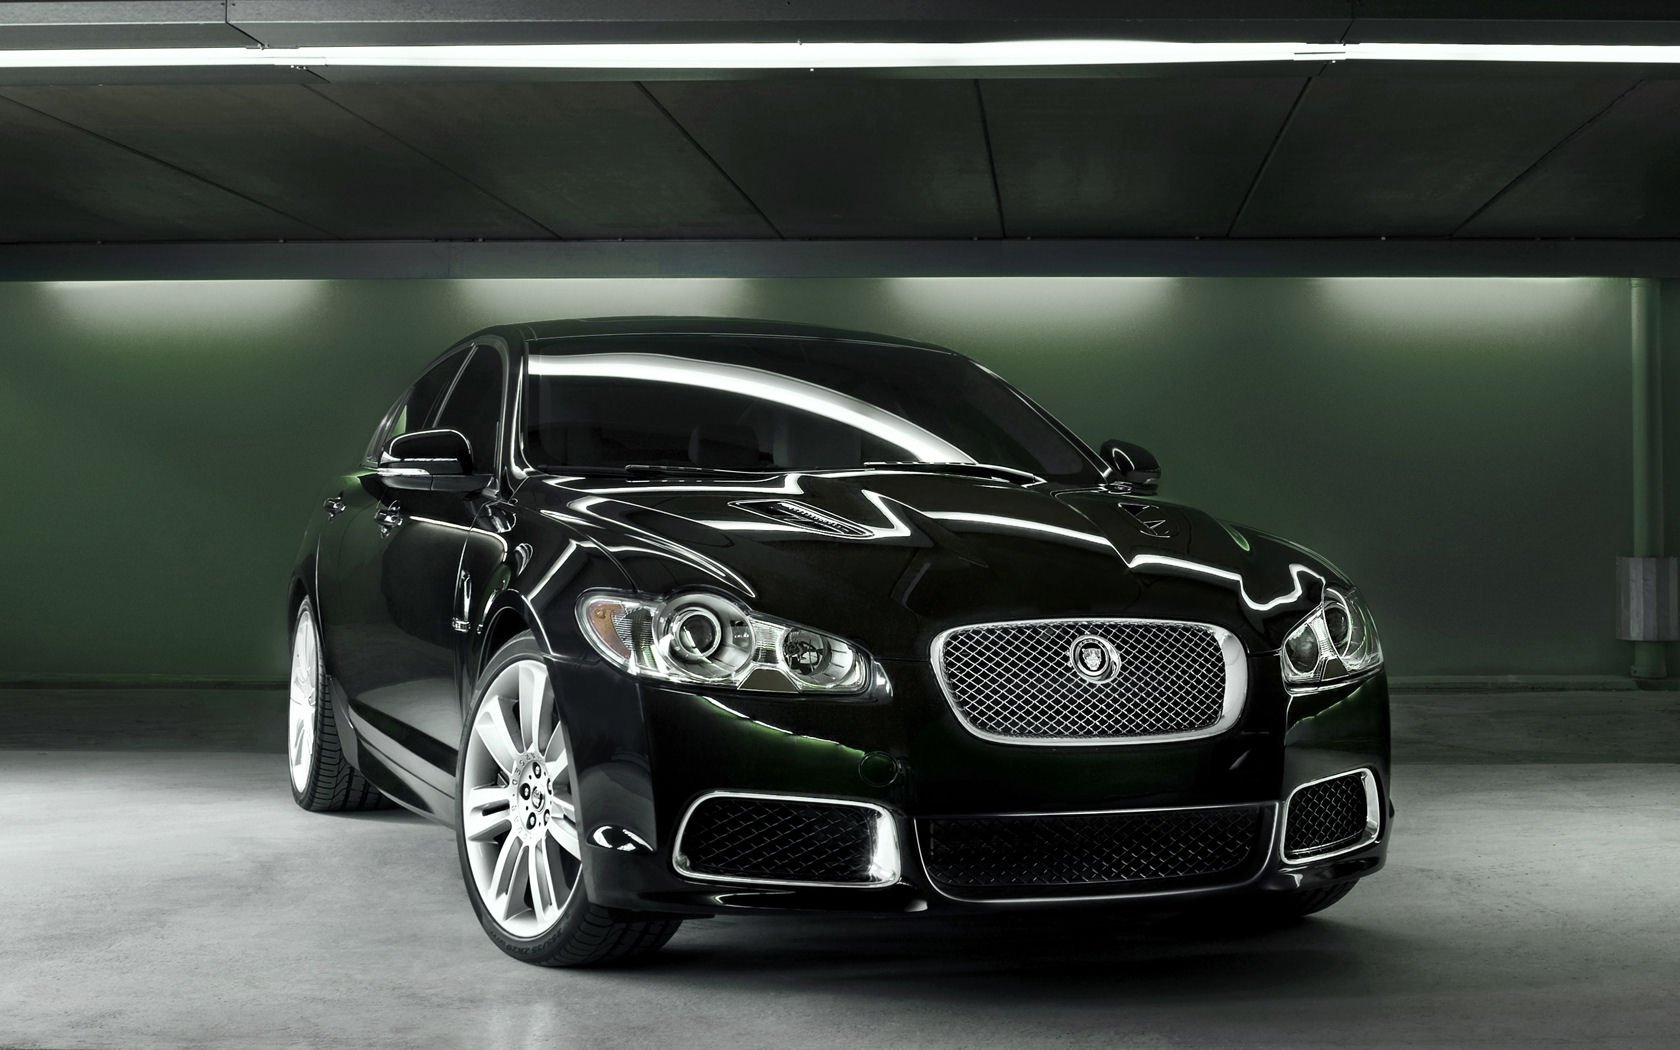 Jaguar XF Desktop Wallpapers Widescreen 1680x1050